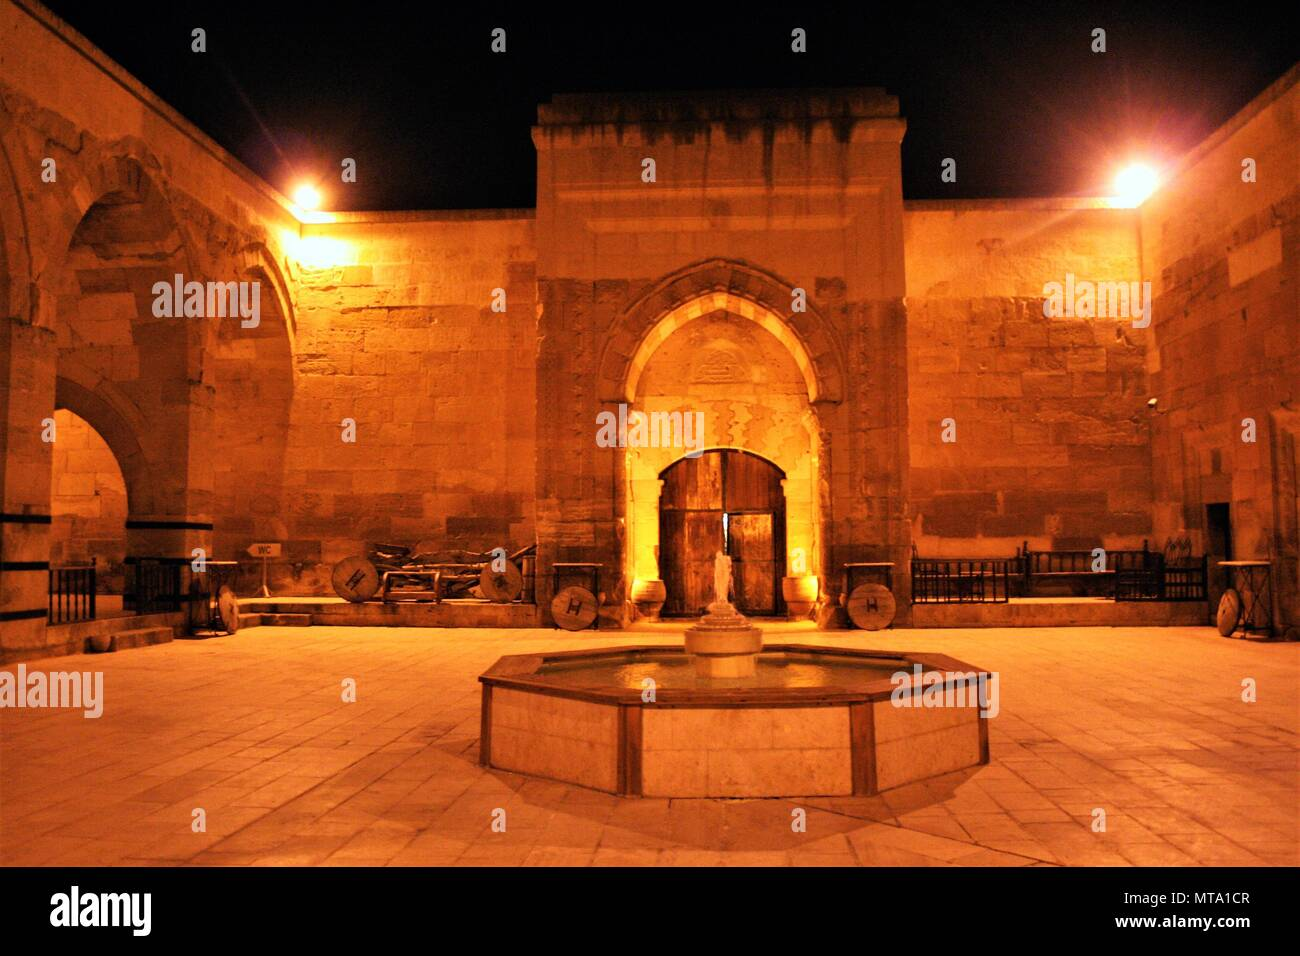 caravansary of Sarihan at night - Stock Image